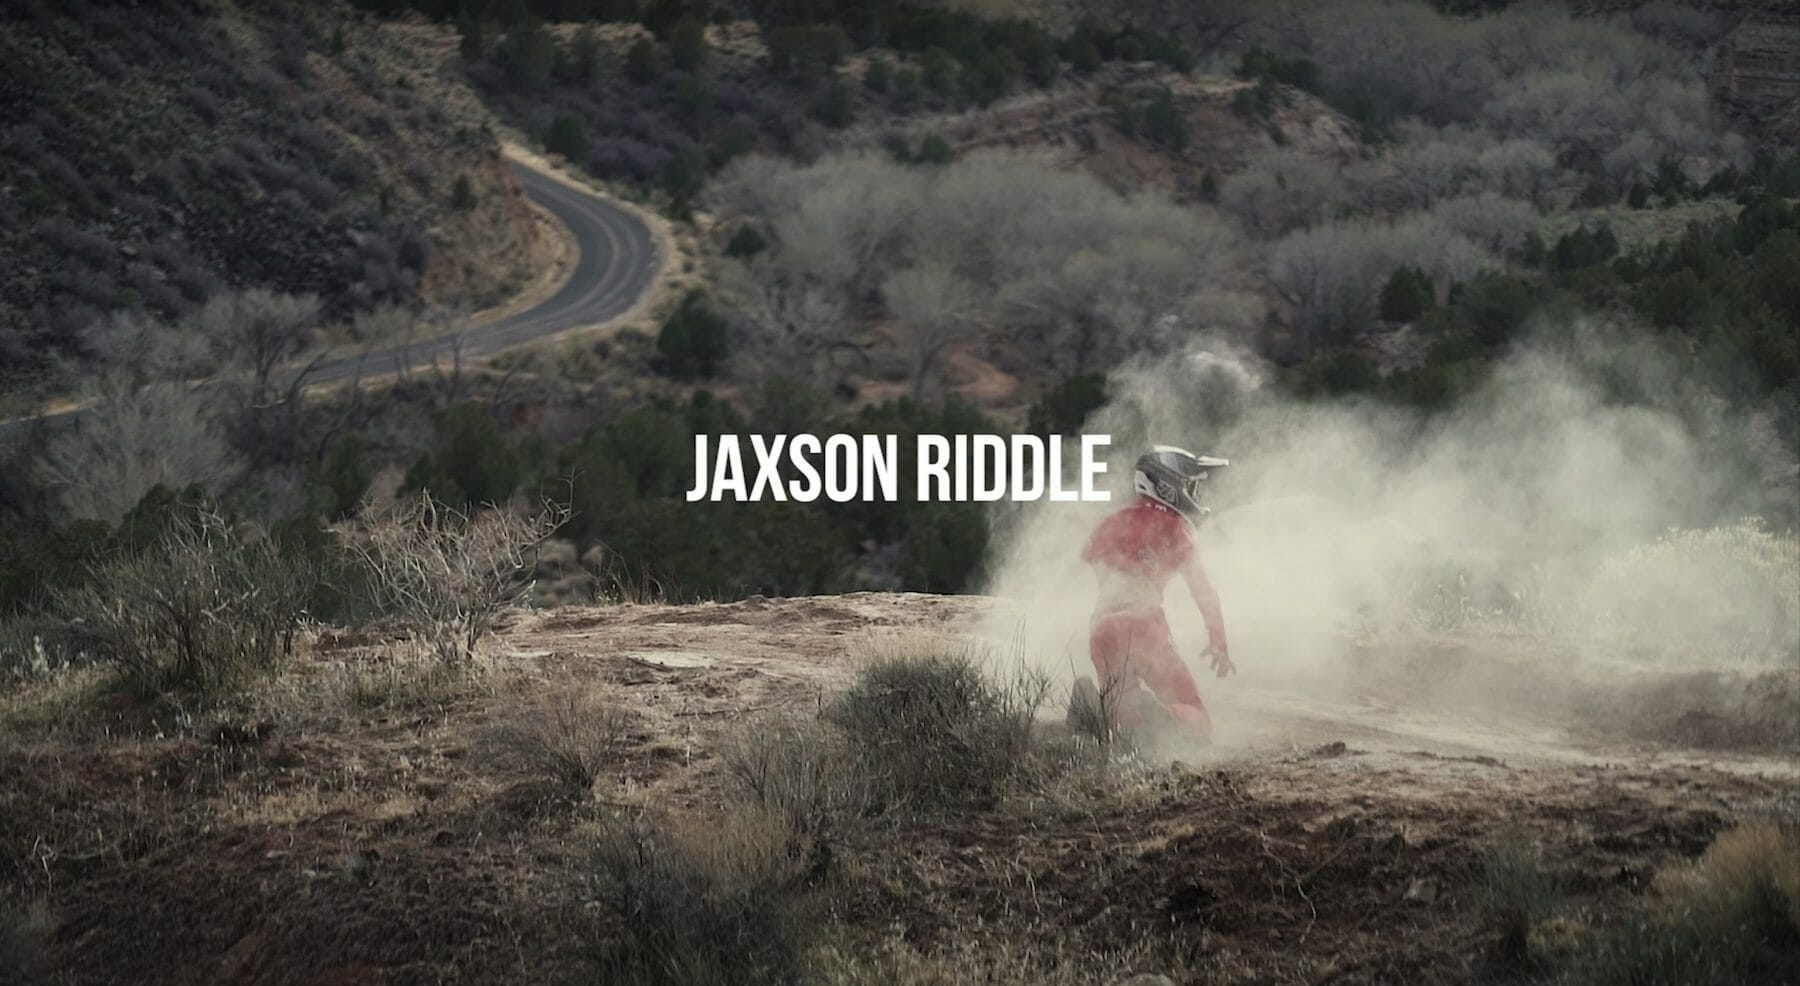 Jaxson Riddle – The Enemy is in your Mind